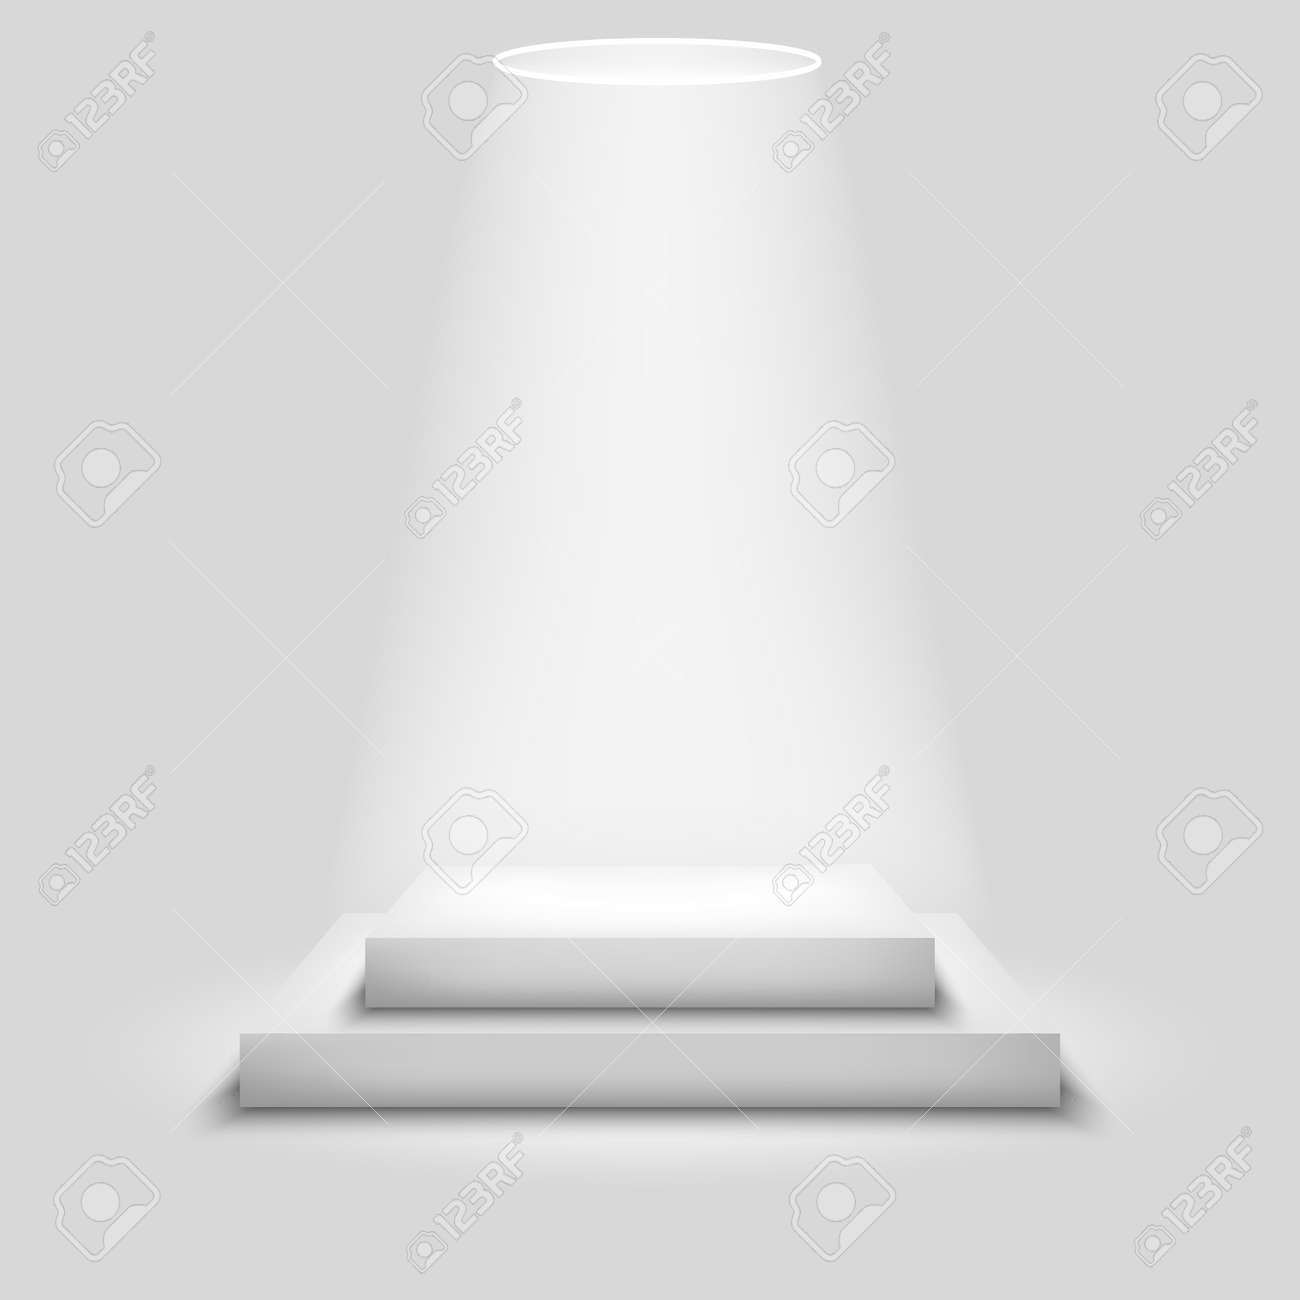 Realistic contest stage, empty white podium, place for product placement for presentation, winner podium or stage on gray background, vector - 154775365